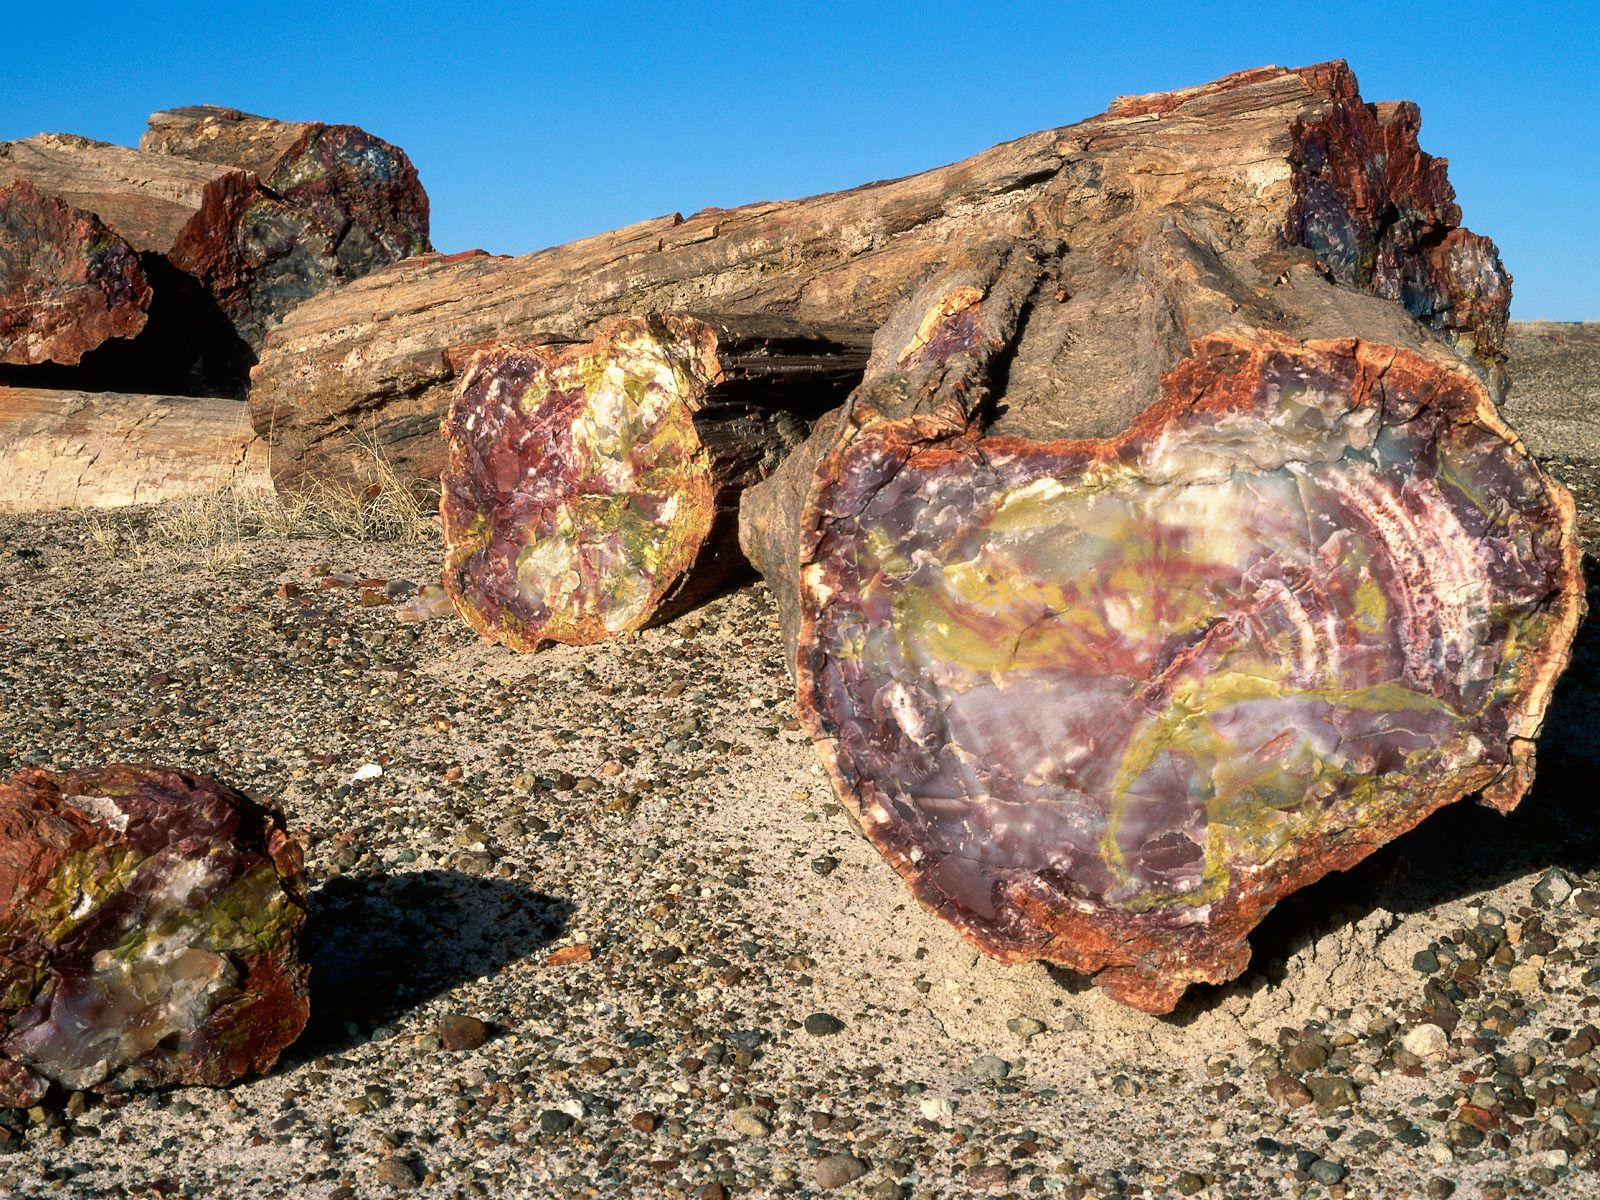 free online personals in petrified forest natl pk Petrified forest national park selected age of the black forest bed, petrified forest member, chinle formation, arizona: an example of dating a.